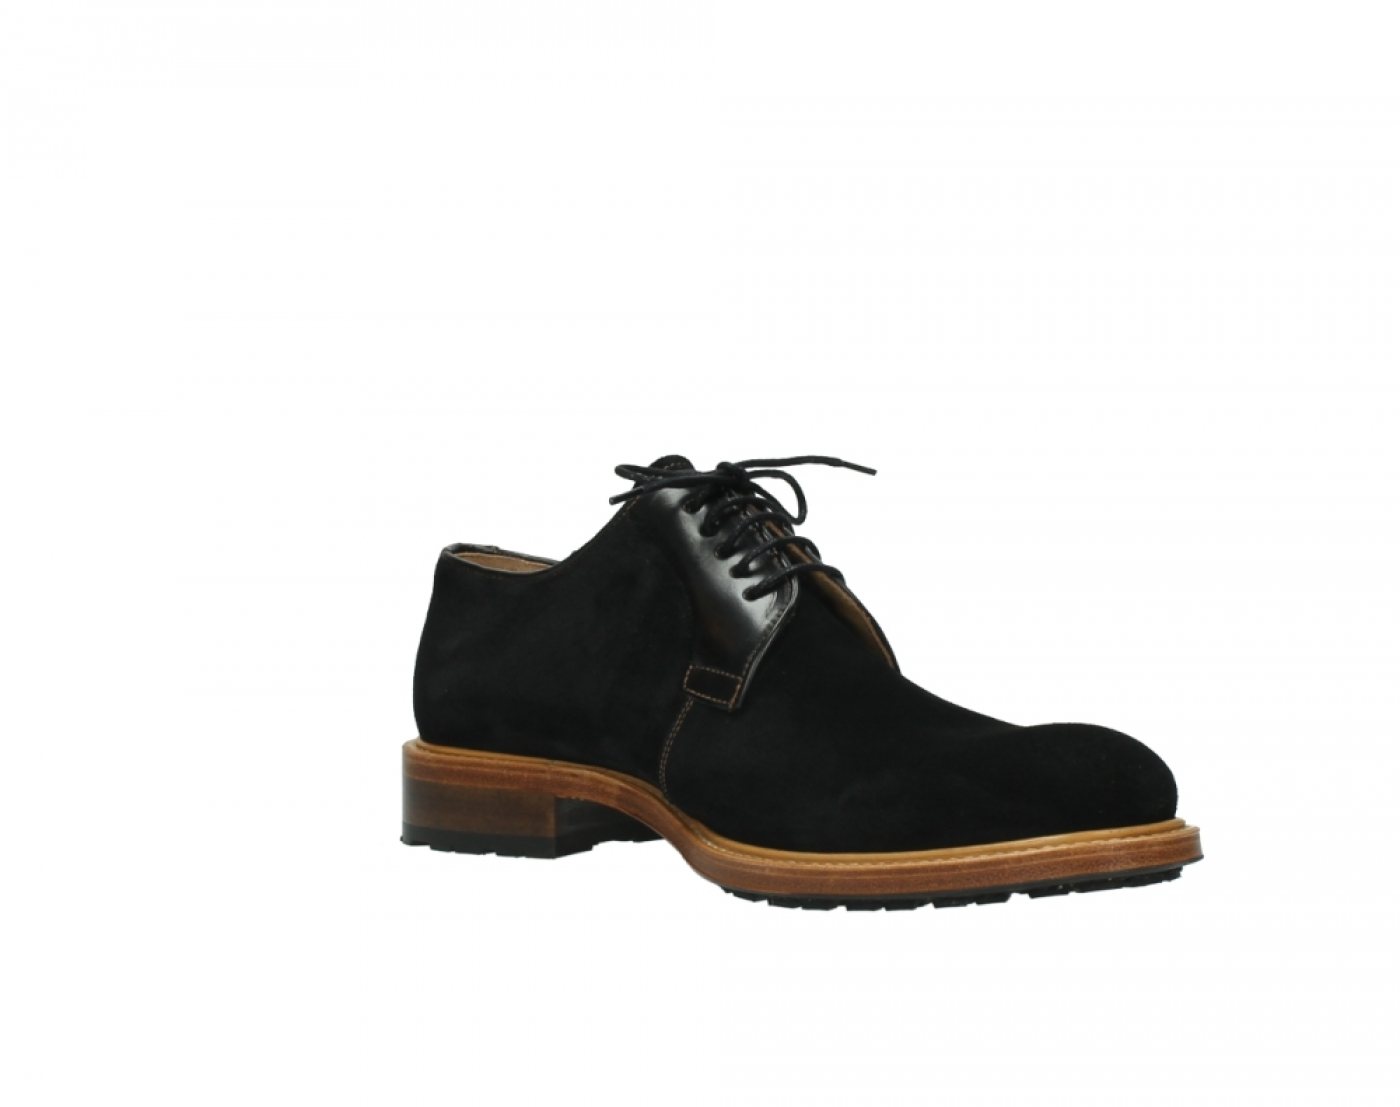 wolky shoes 9393 brisbane winter black suede order now